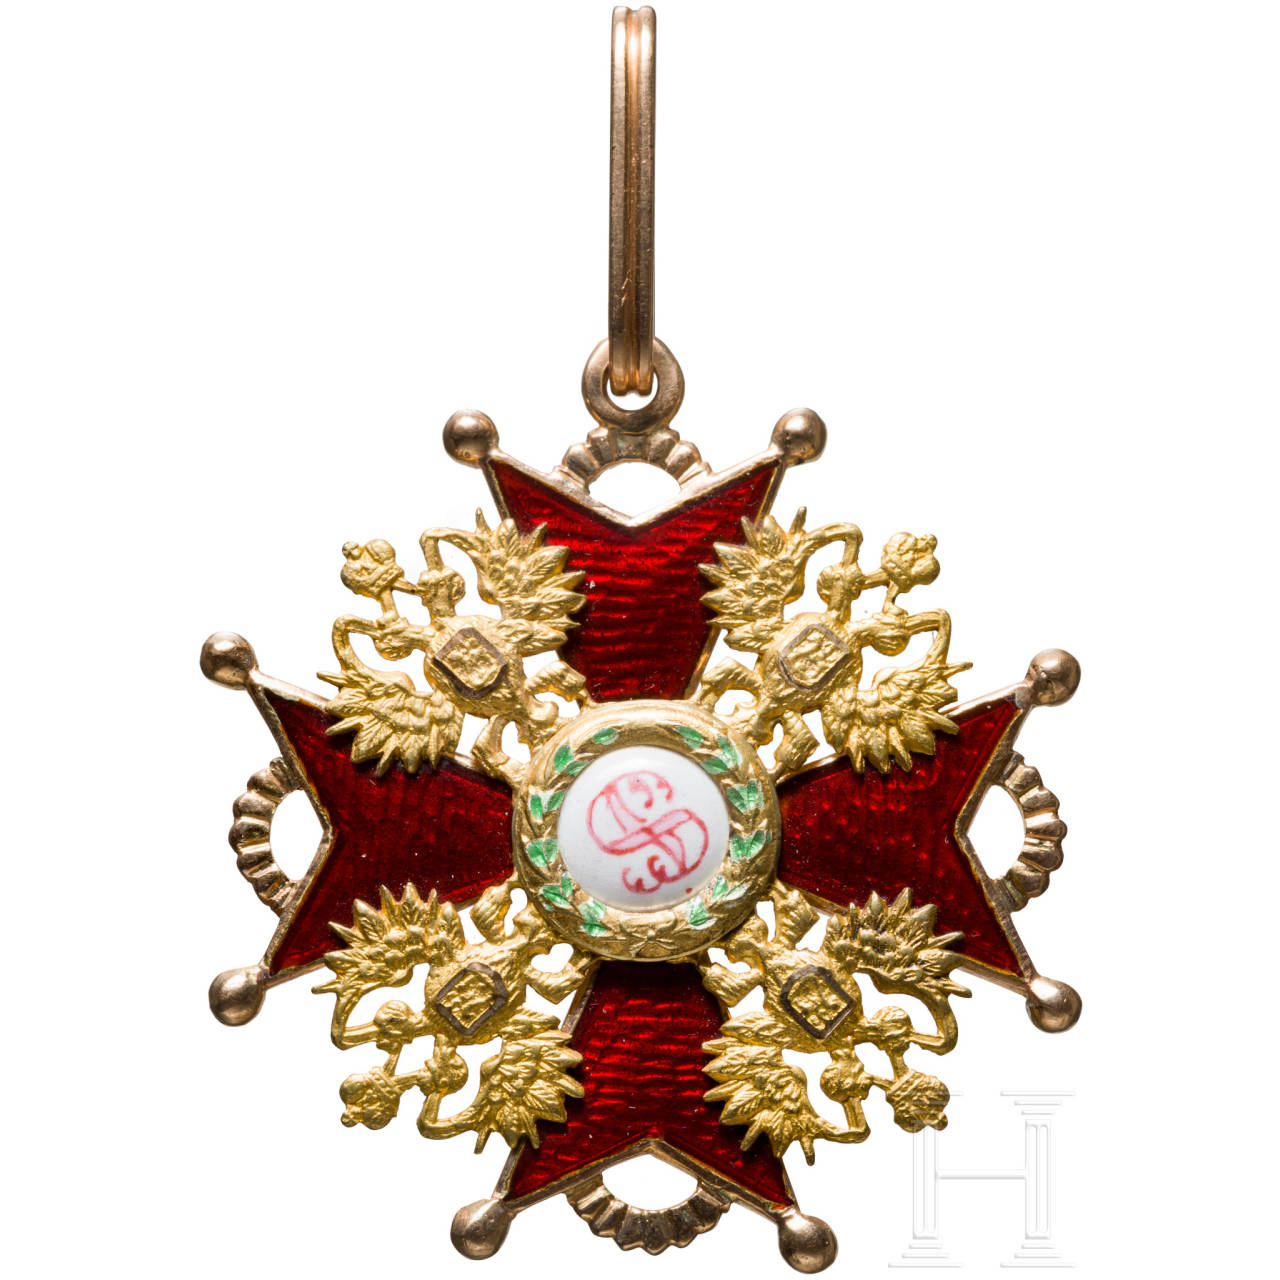 Order of St. Stanislaus, cross 2nd class, around 1900